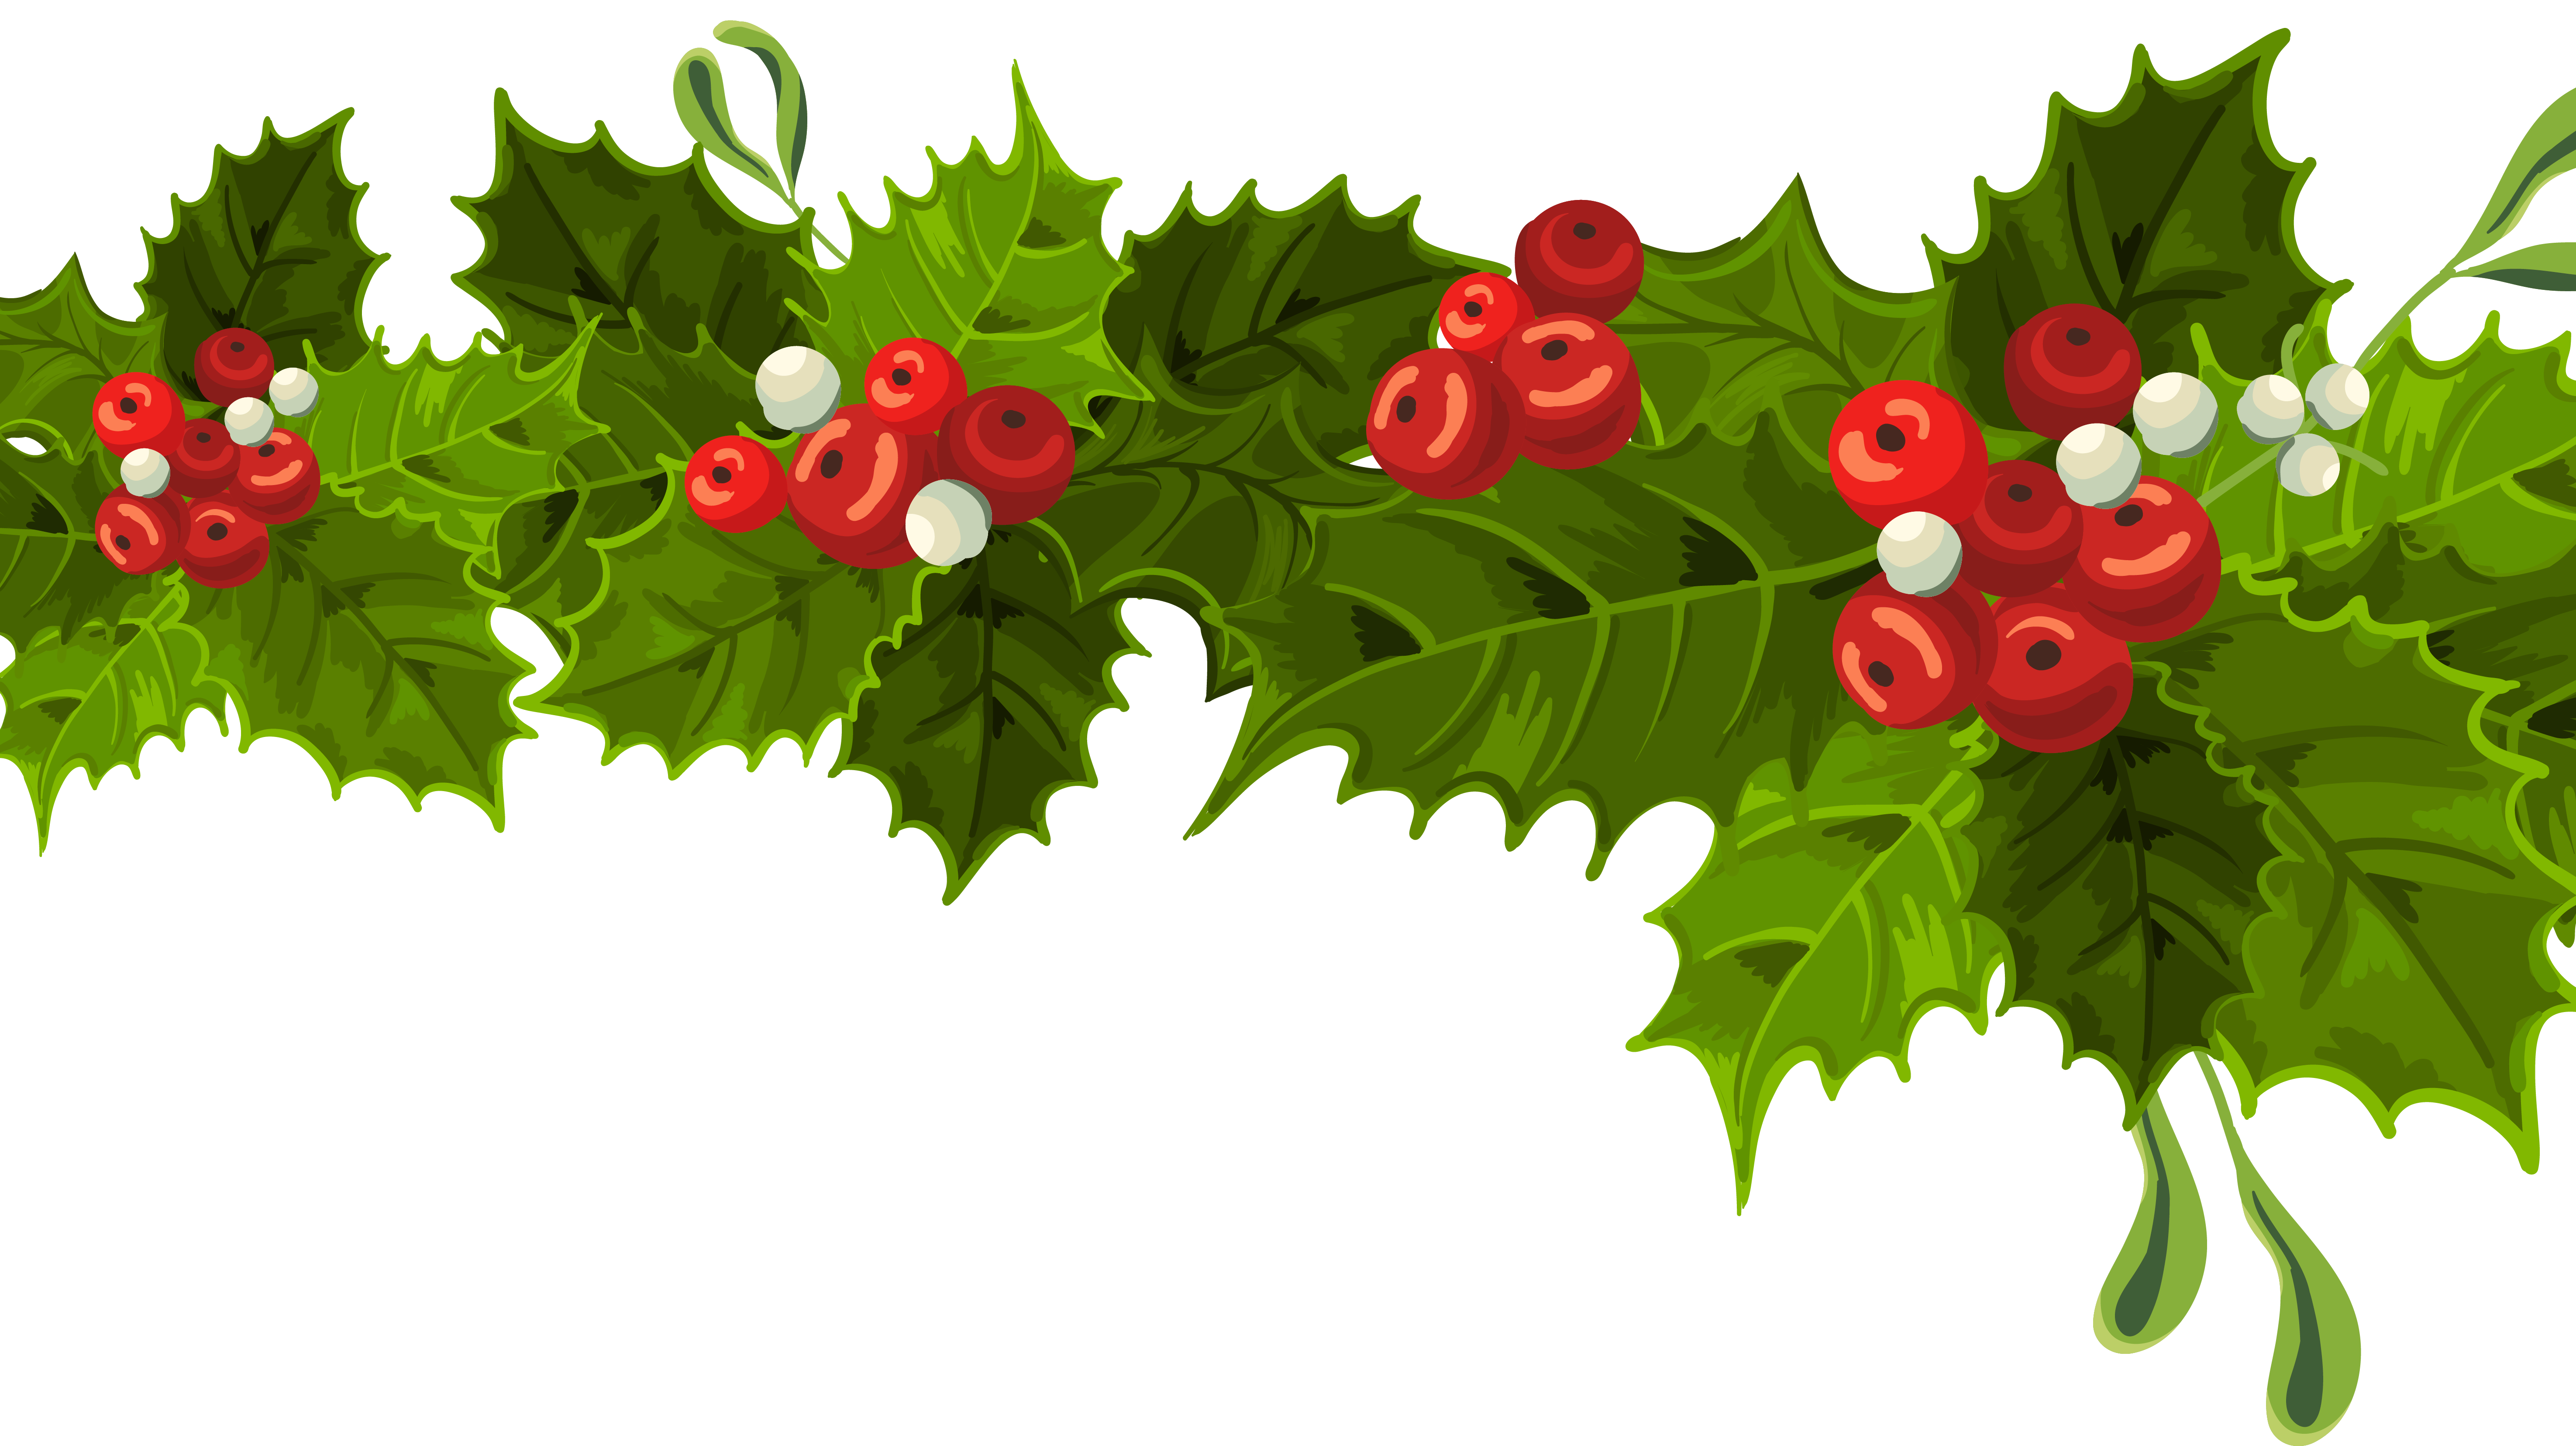 png library stock Transparent long mistletoe decoration. Berry clipart christmas.